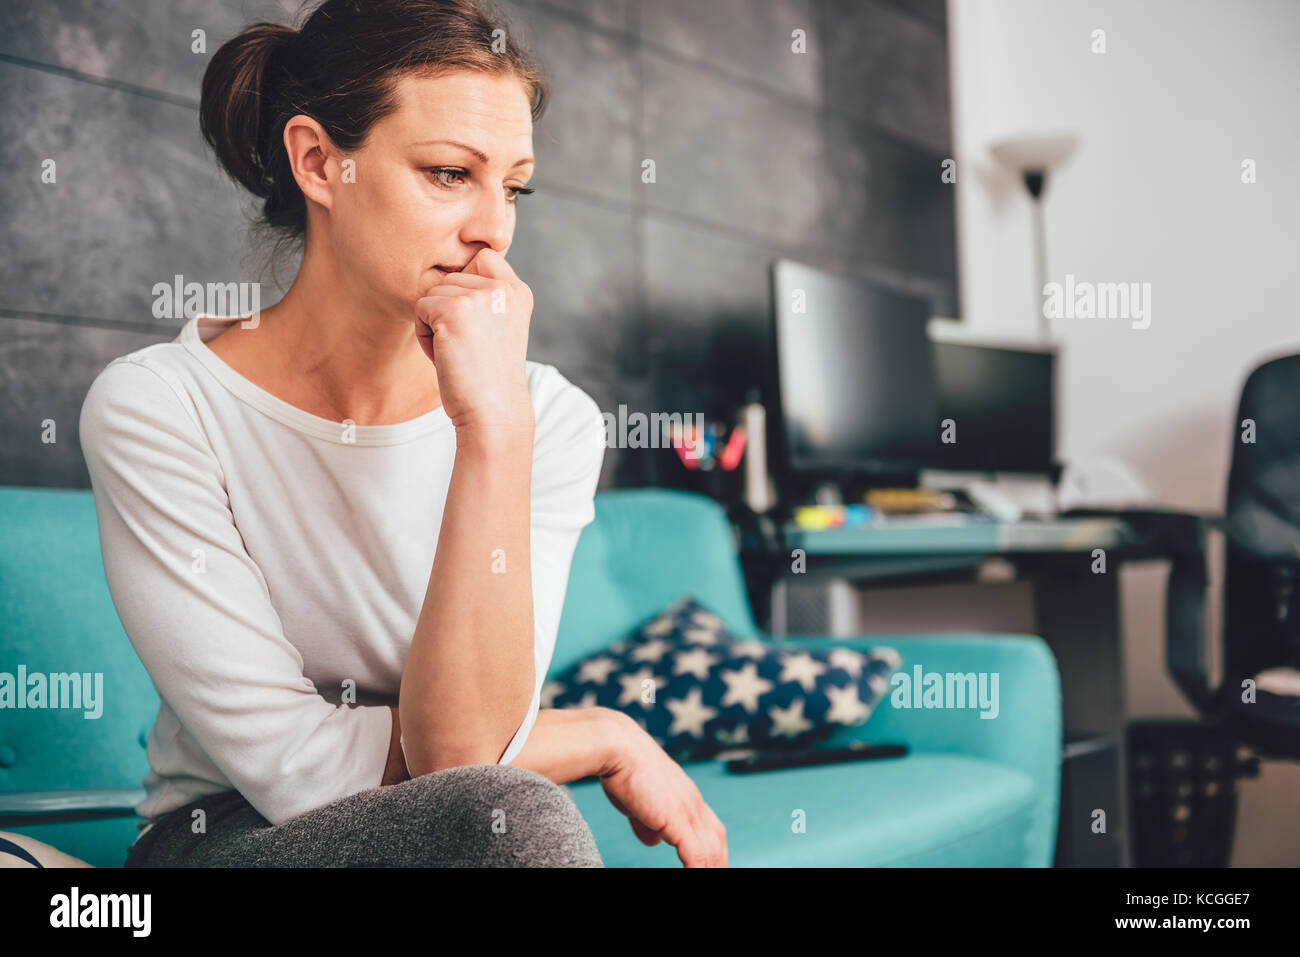 Sad woman sitting on a sofa in the living room - Stock Image